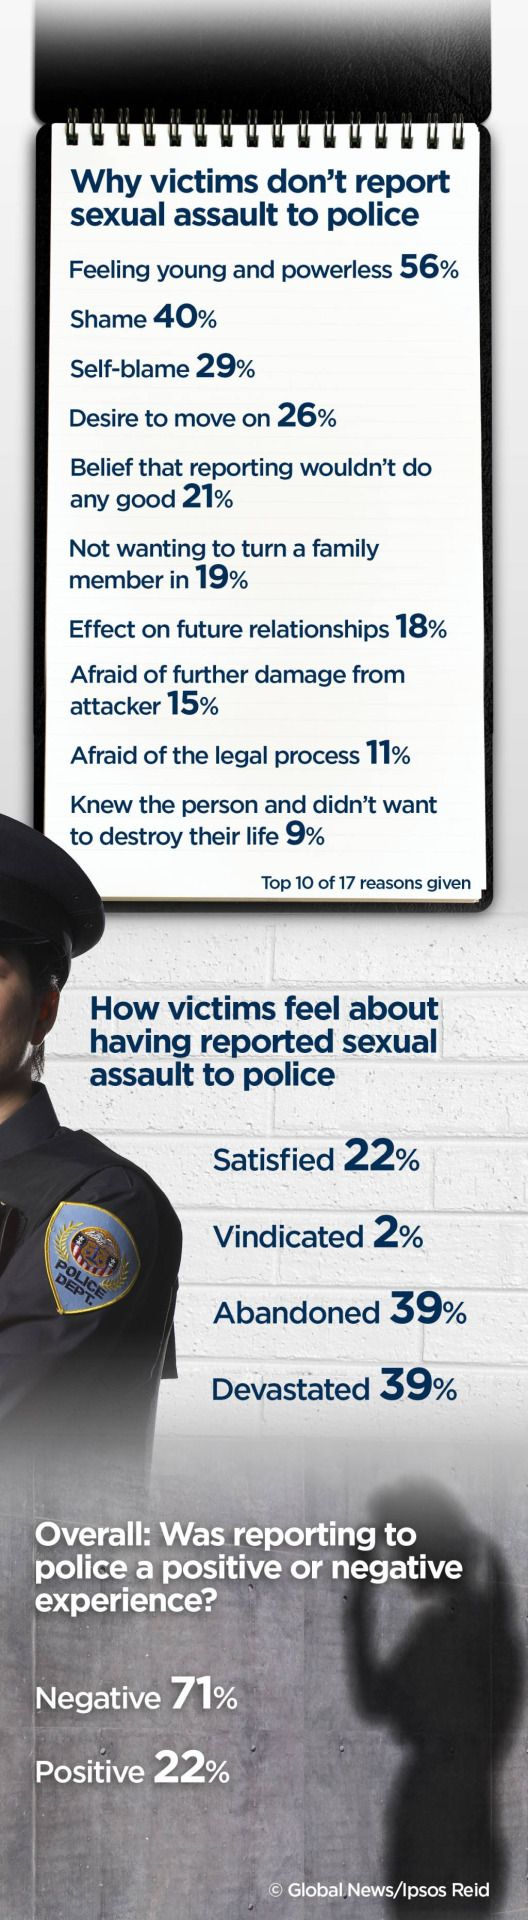 why victims of rape don't report to police